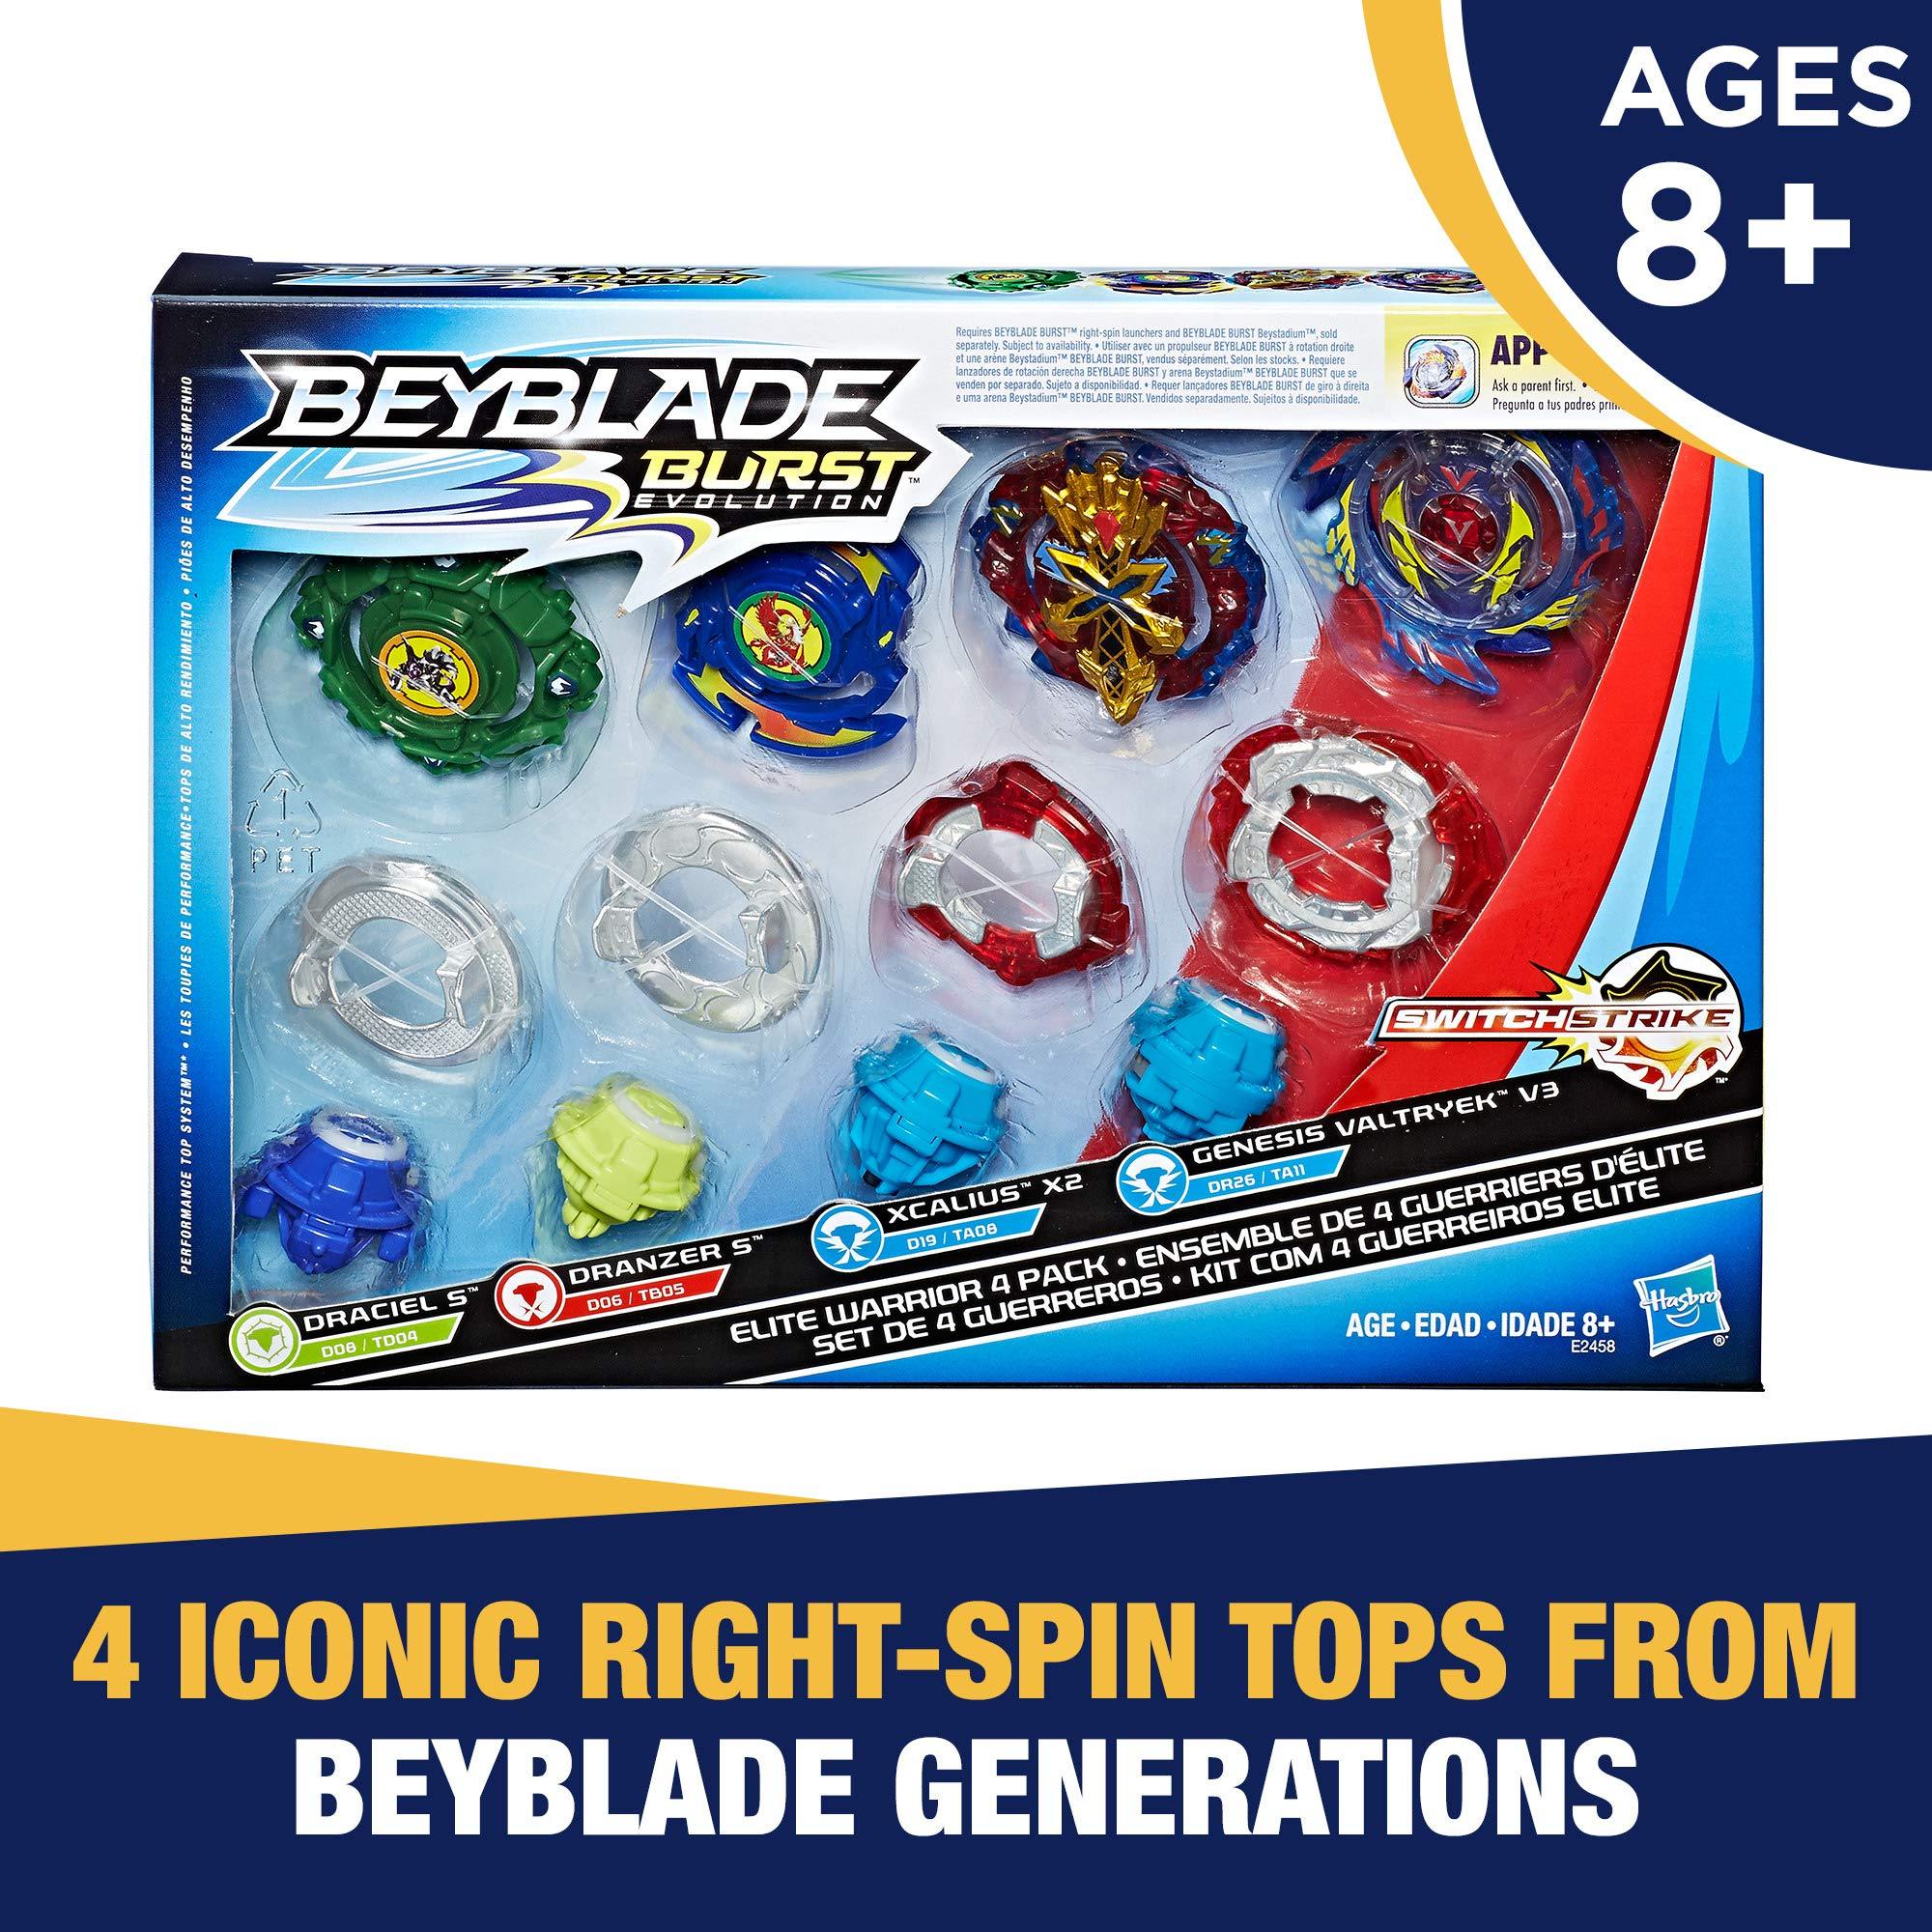 Beyblade Burst Evolution Elite Warrior 4-Pack - 4 Iconic Right-Spin Battling Tops, Age 8+ Toy E2458AC1 (Amazon Exclusive) by BEYBLADE (Image #2)